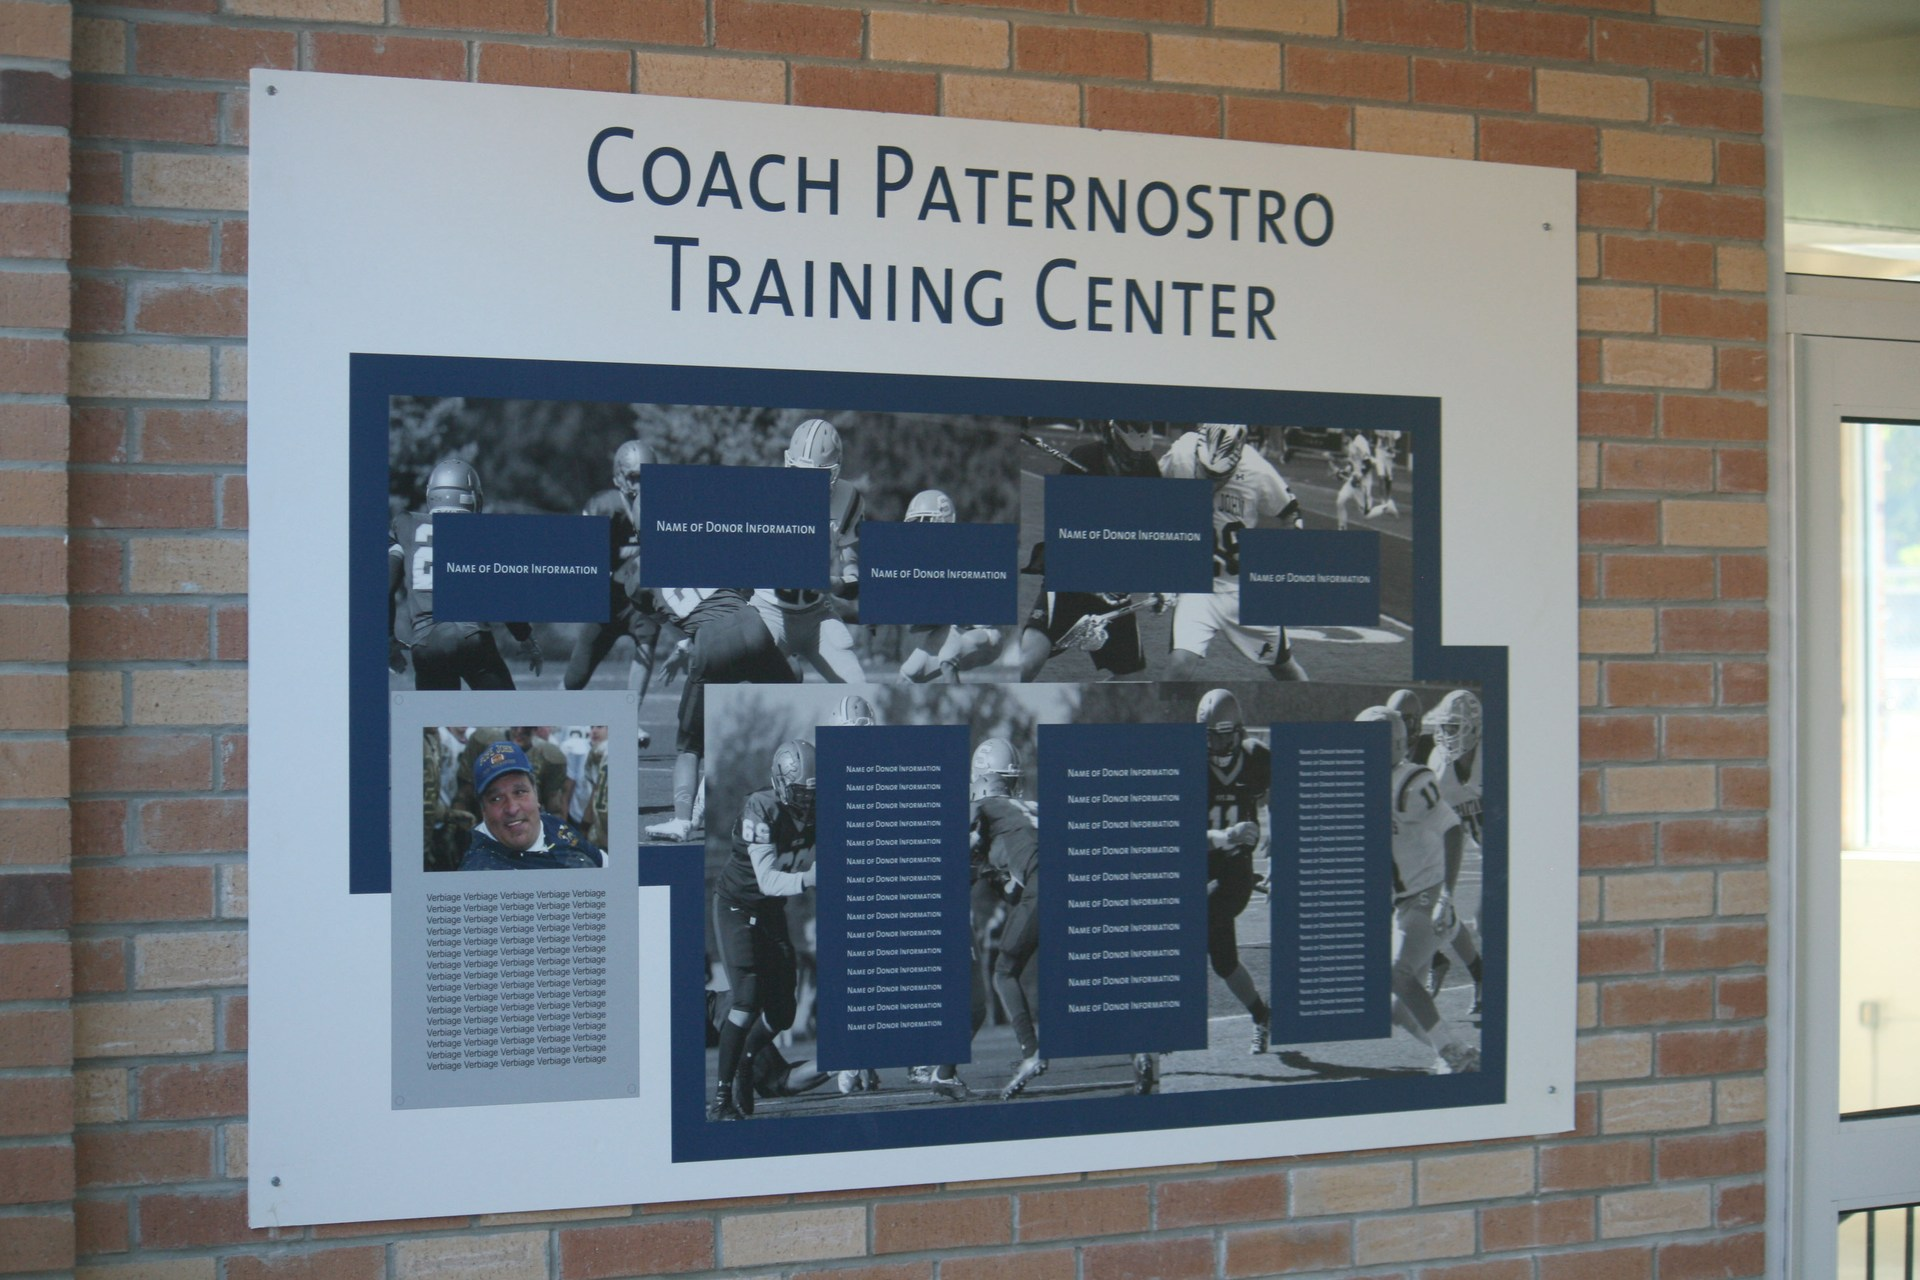 Coach Paternostro Training Center sign